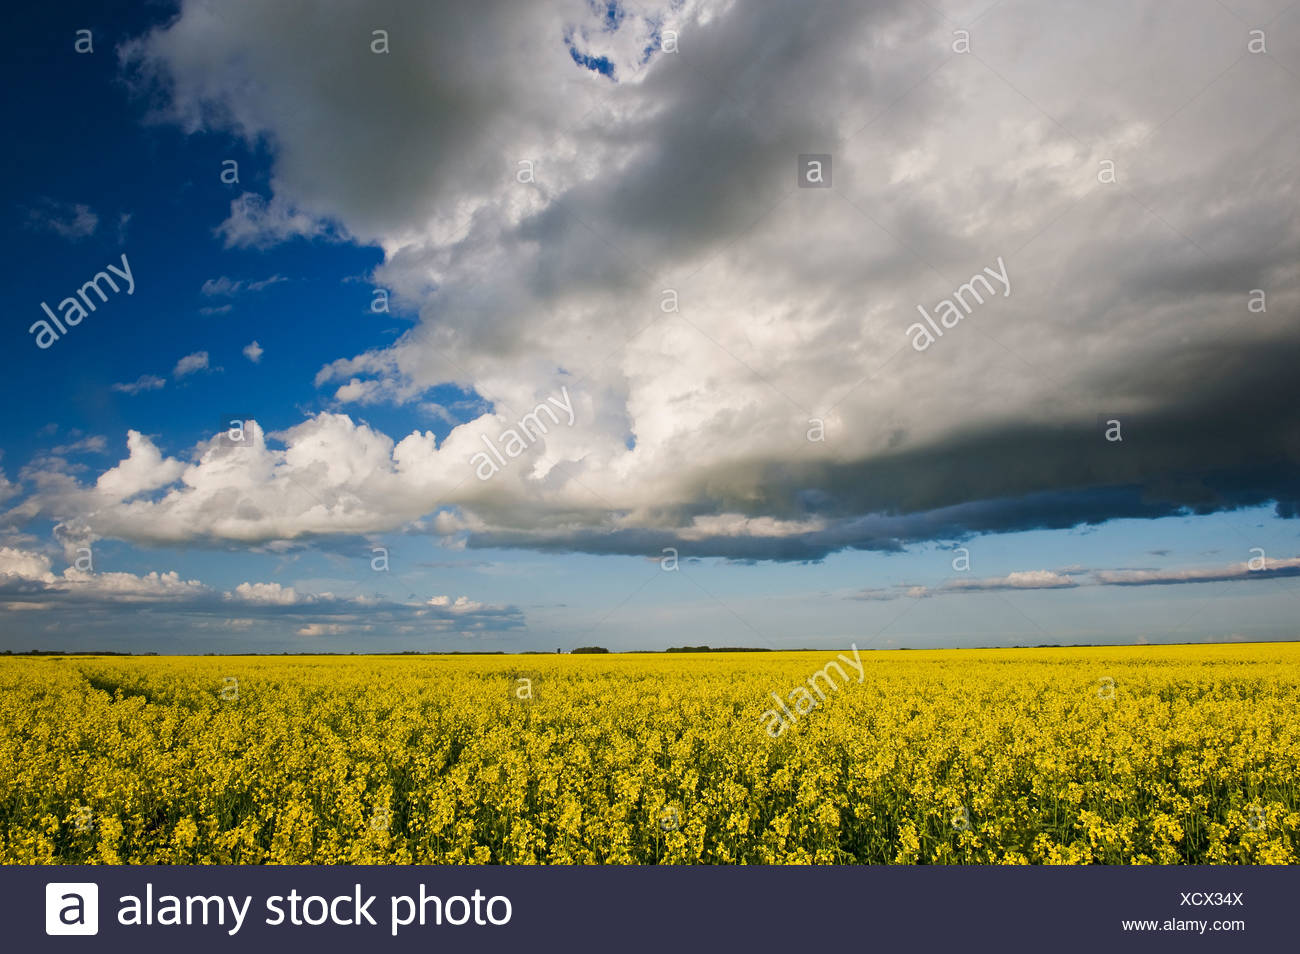 blooming canola field with cumulonimbus cloud in the sky, near Lorette, Manitoba, Canada - Stock Image